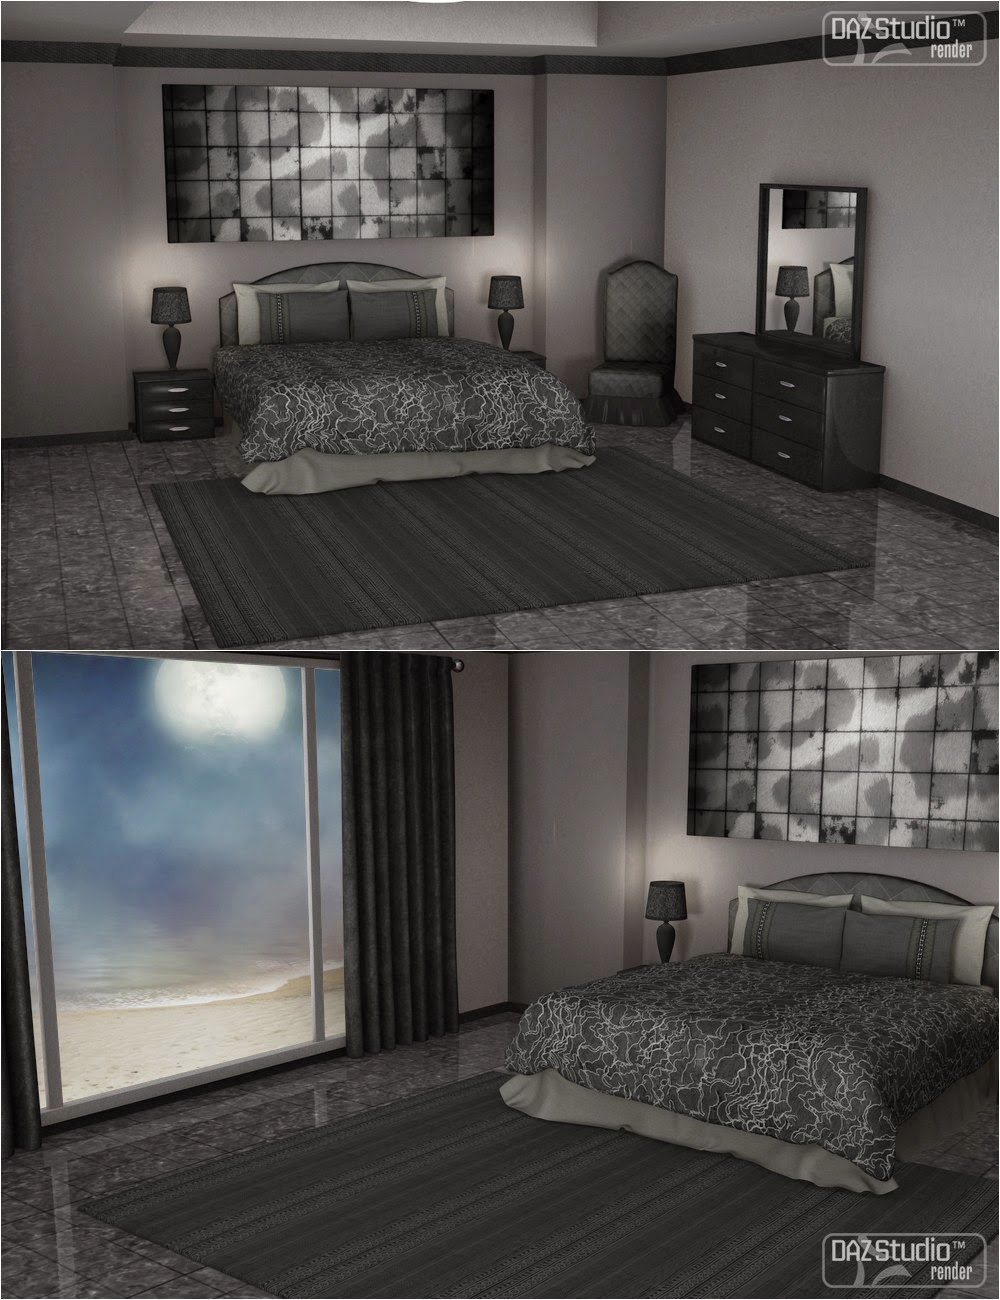 Download daz studio 3 for free daz 3d designer for for 3d bedroom maker